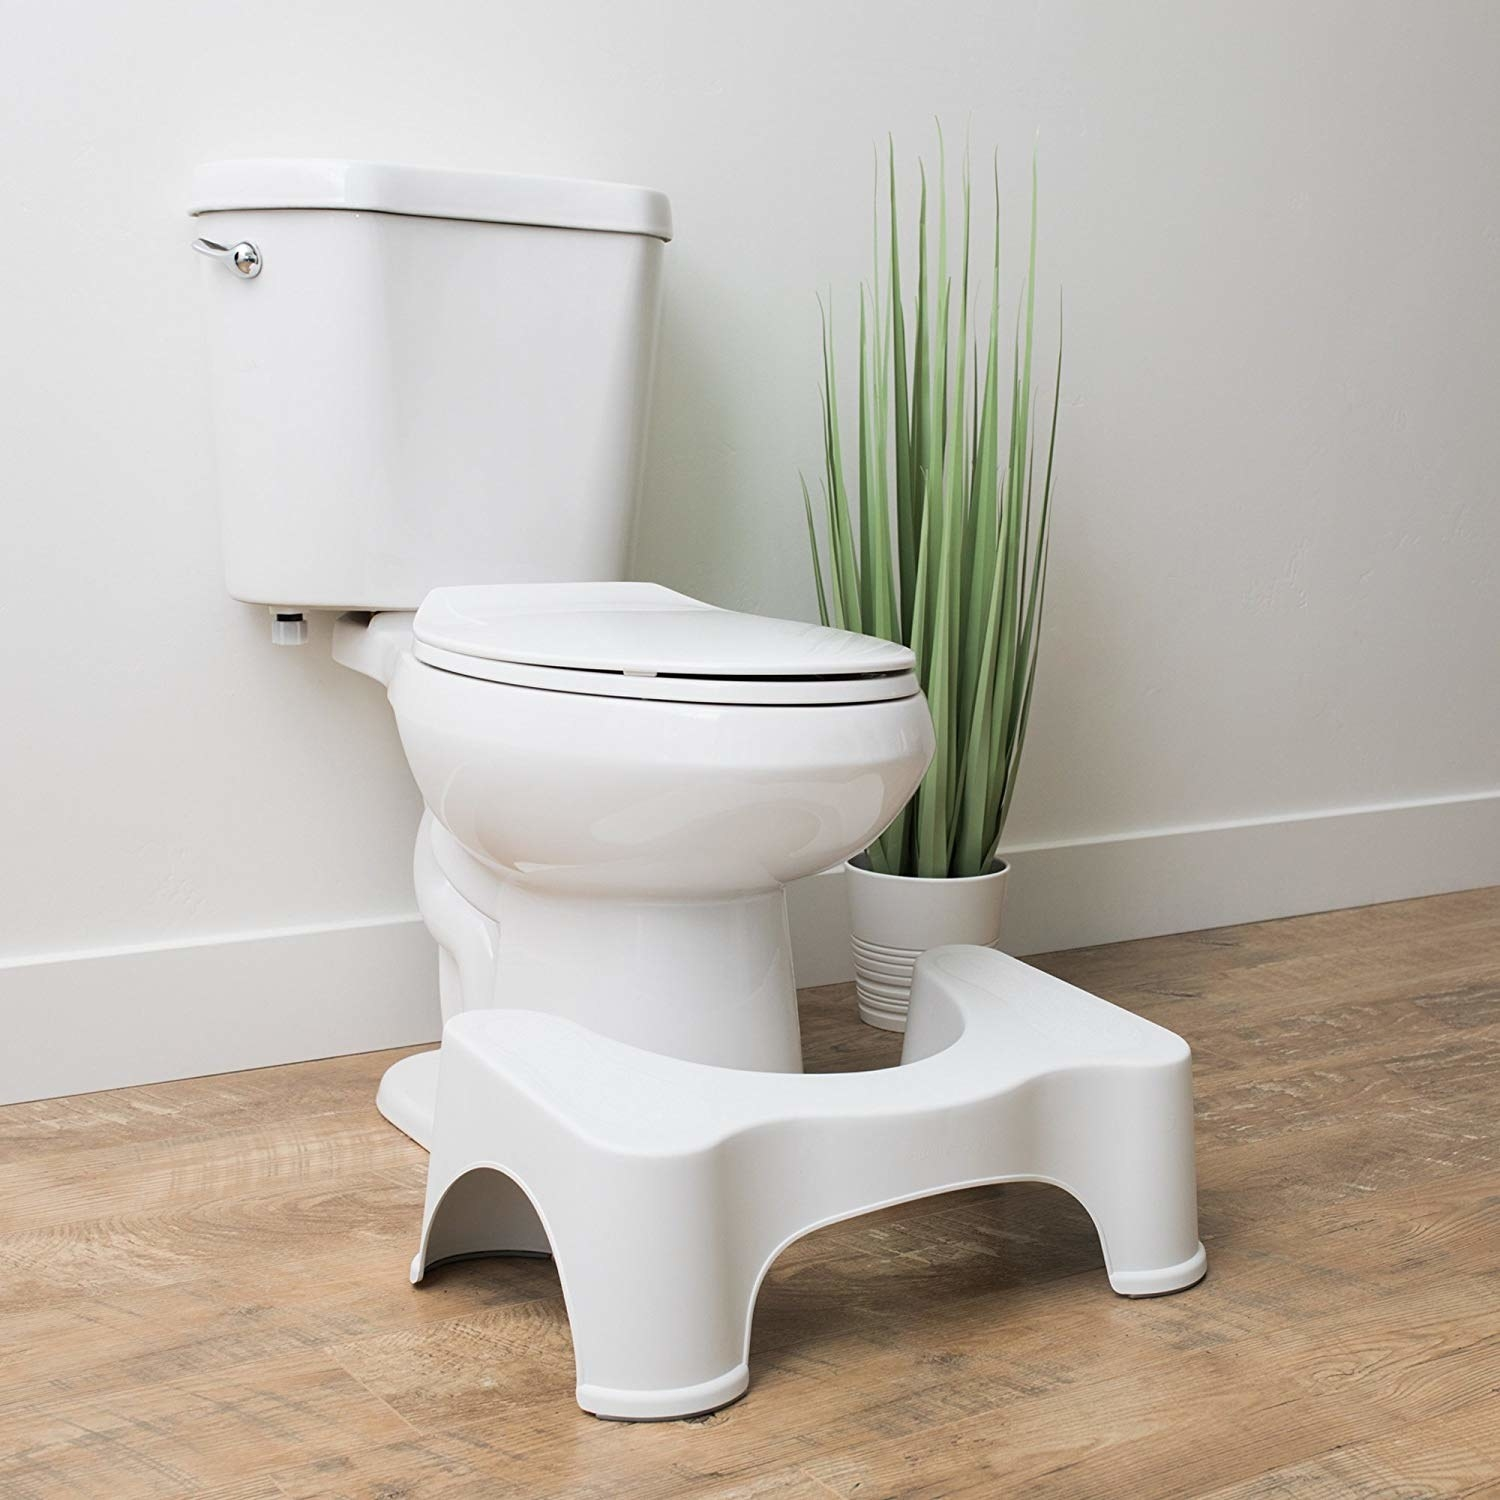 The white Squatty Potty u-shaped stool in front of a toilet